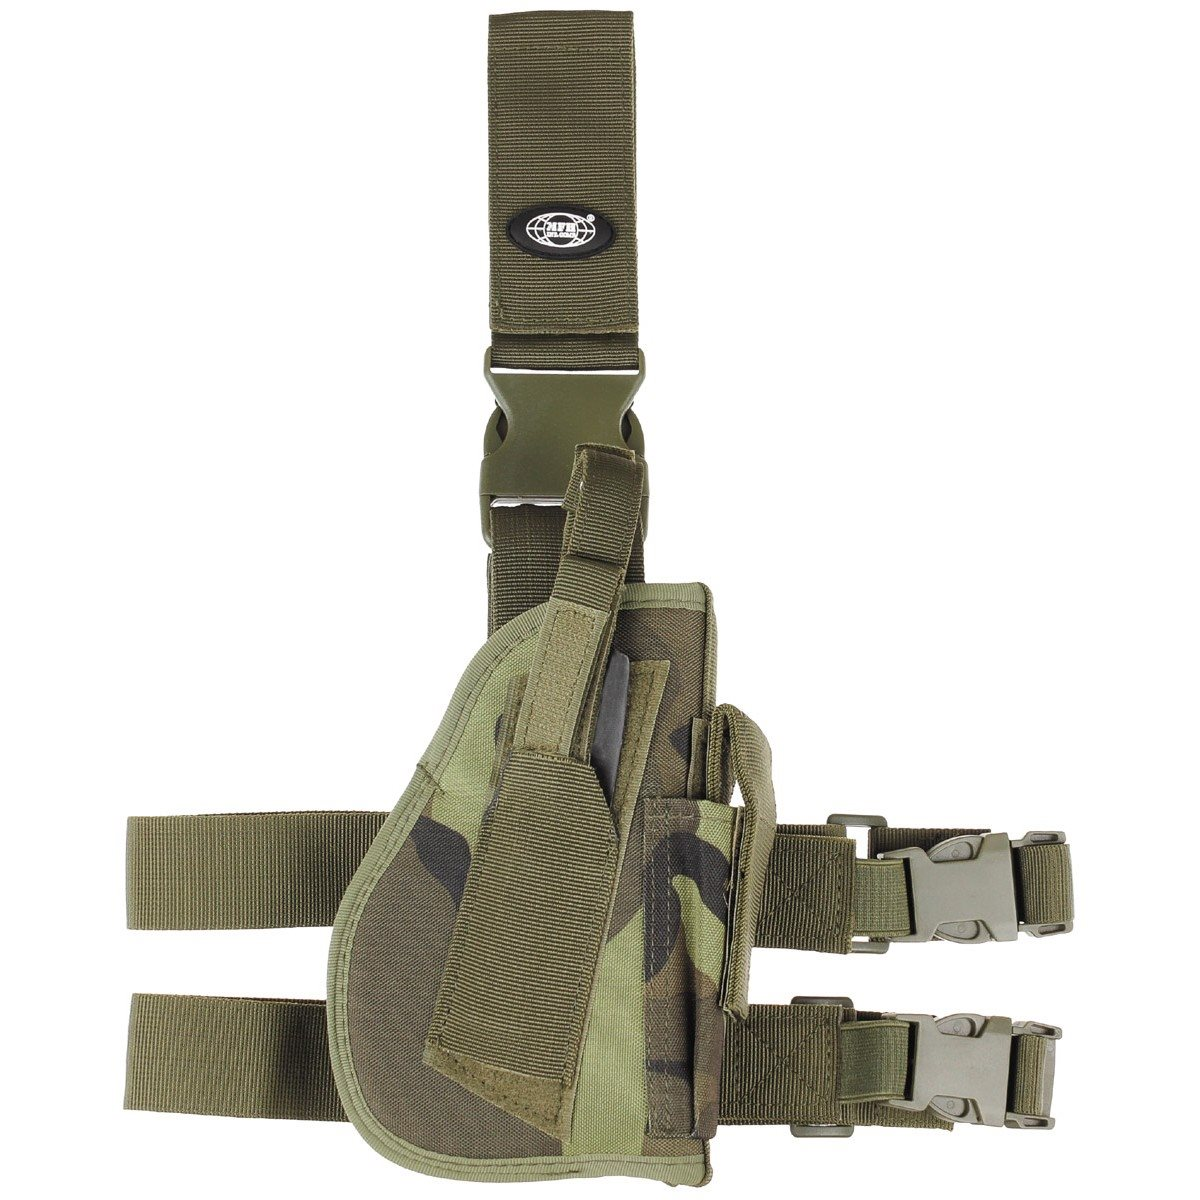 Thigh holster for CZ 95 rifle right MFH int. comp. 30725J L-11